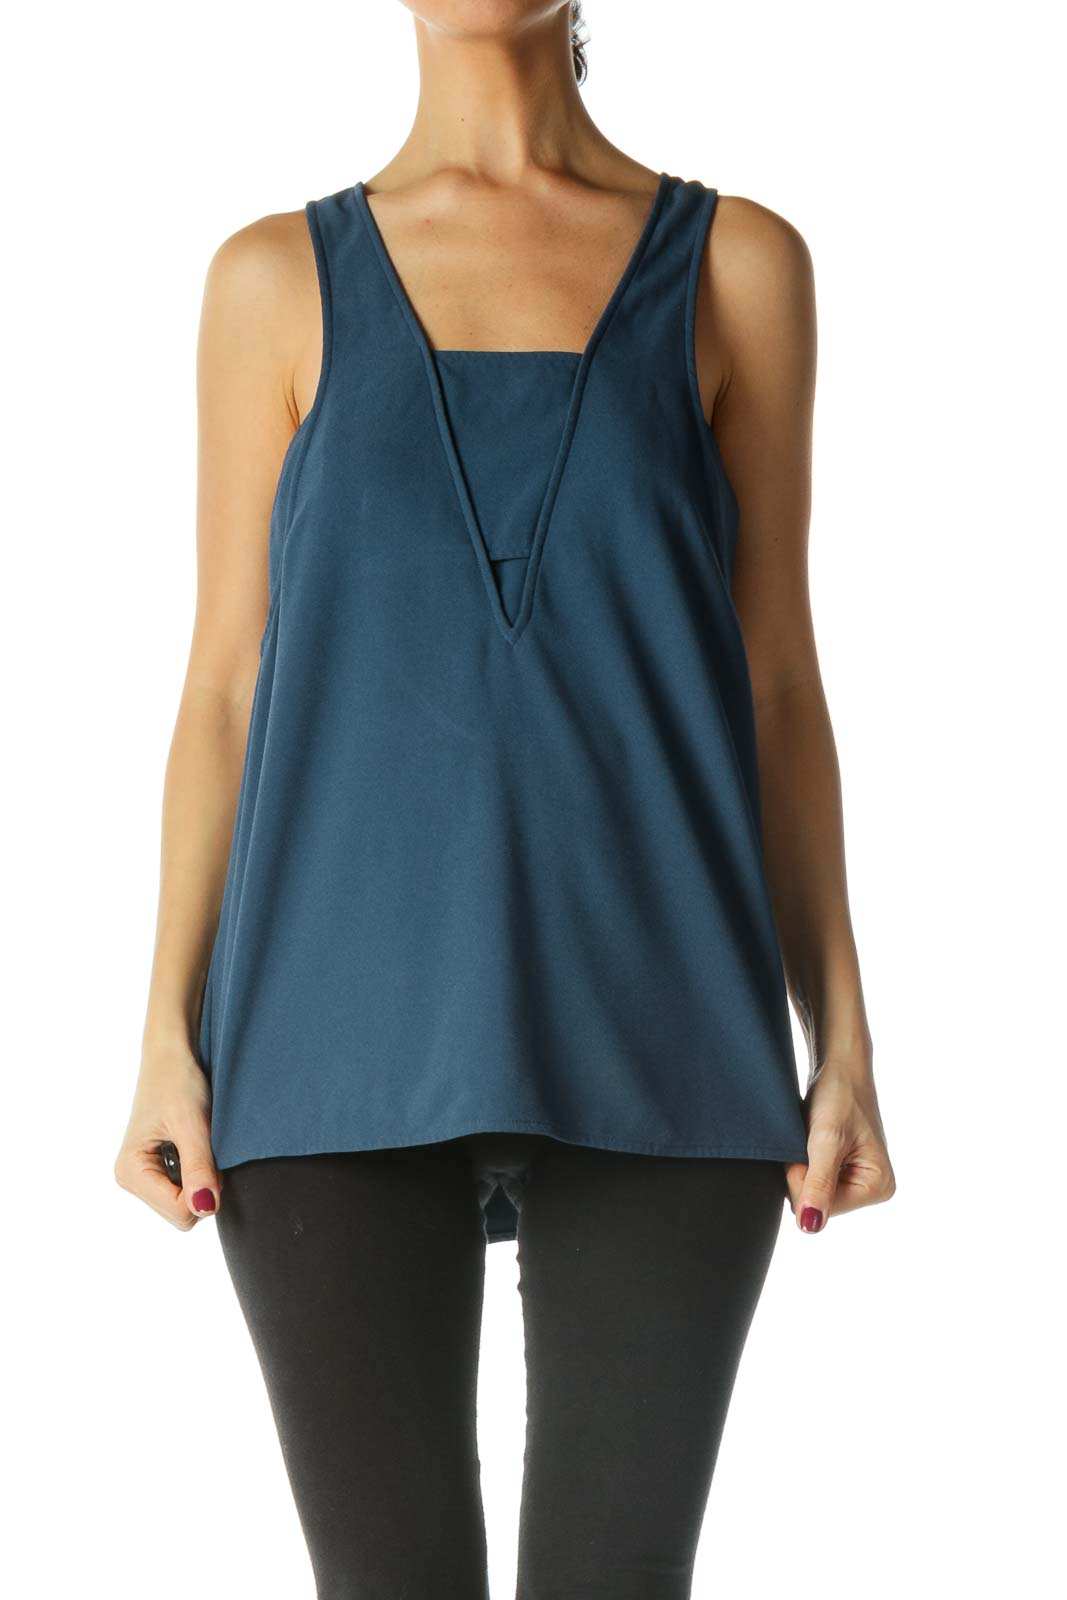 Blue Open Back Tank Top Front